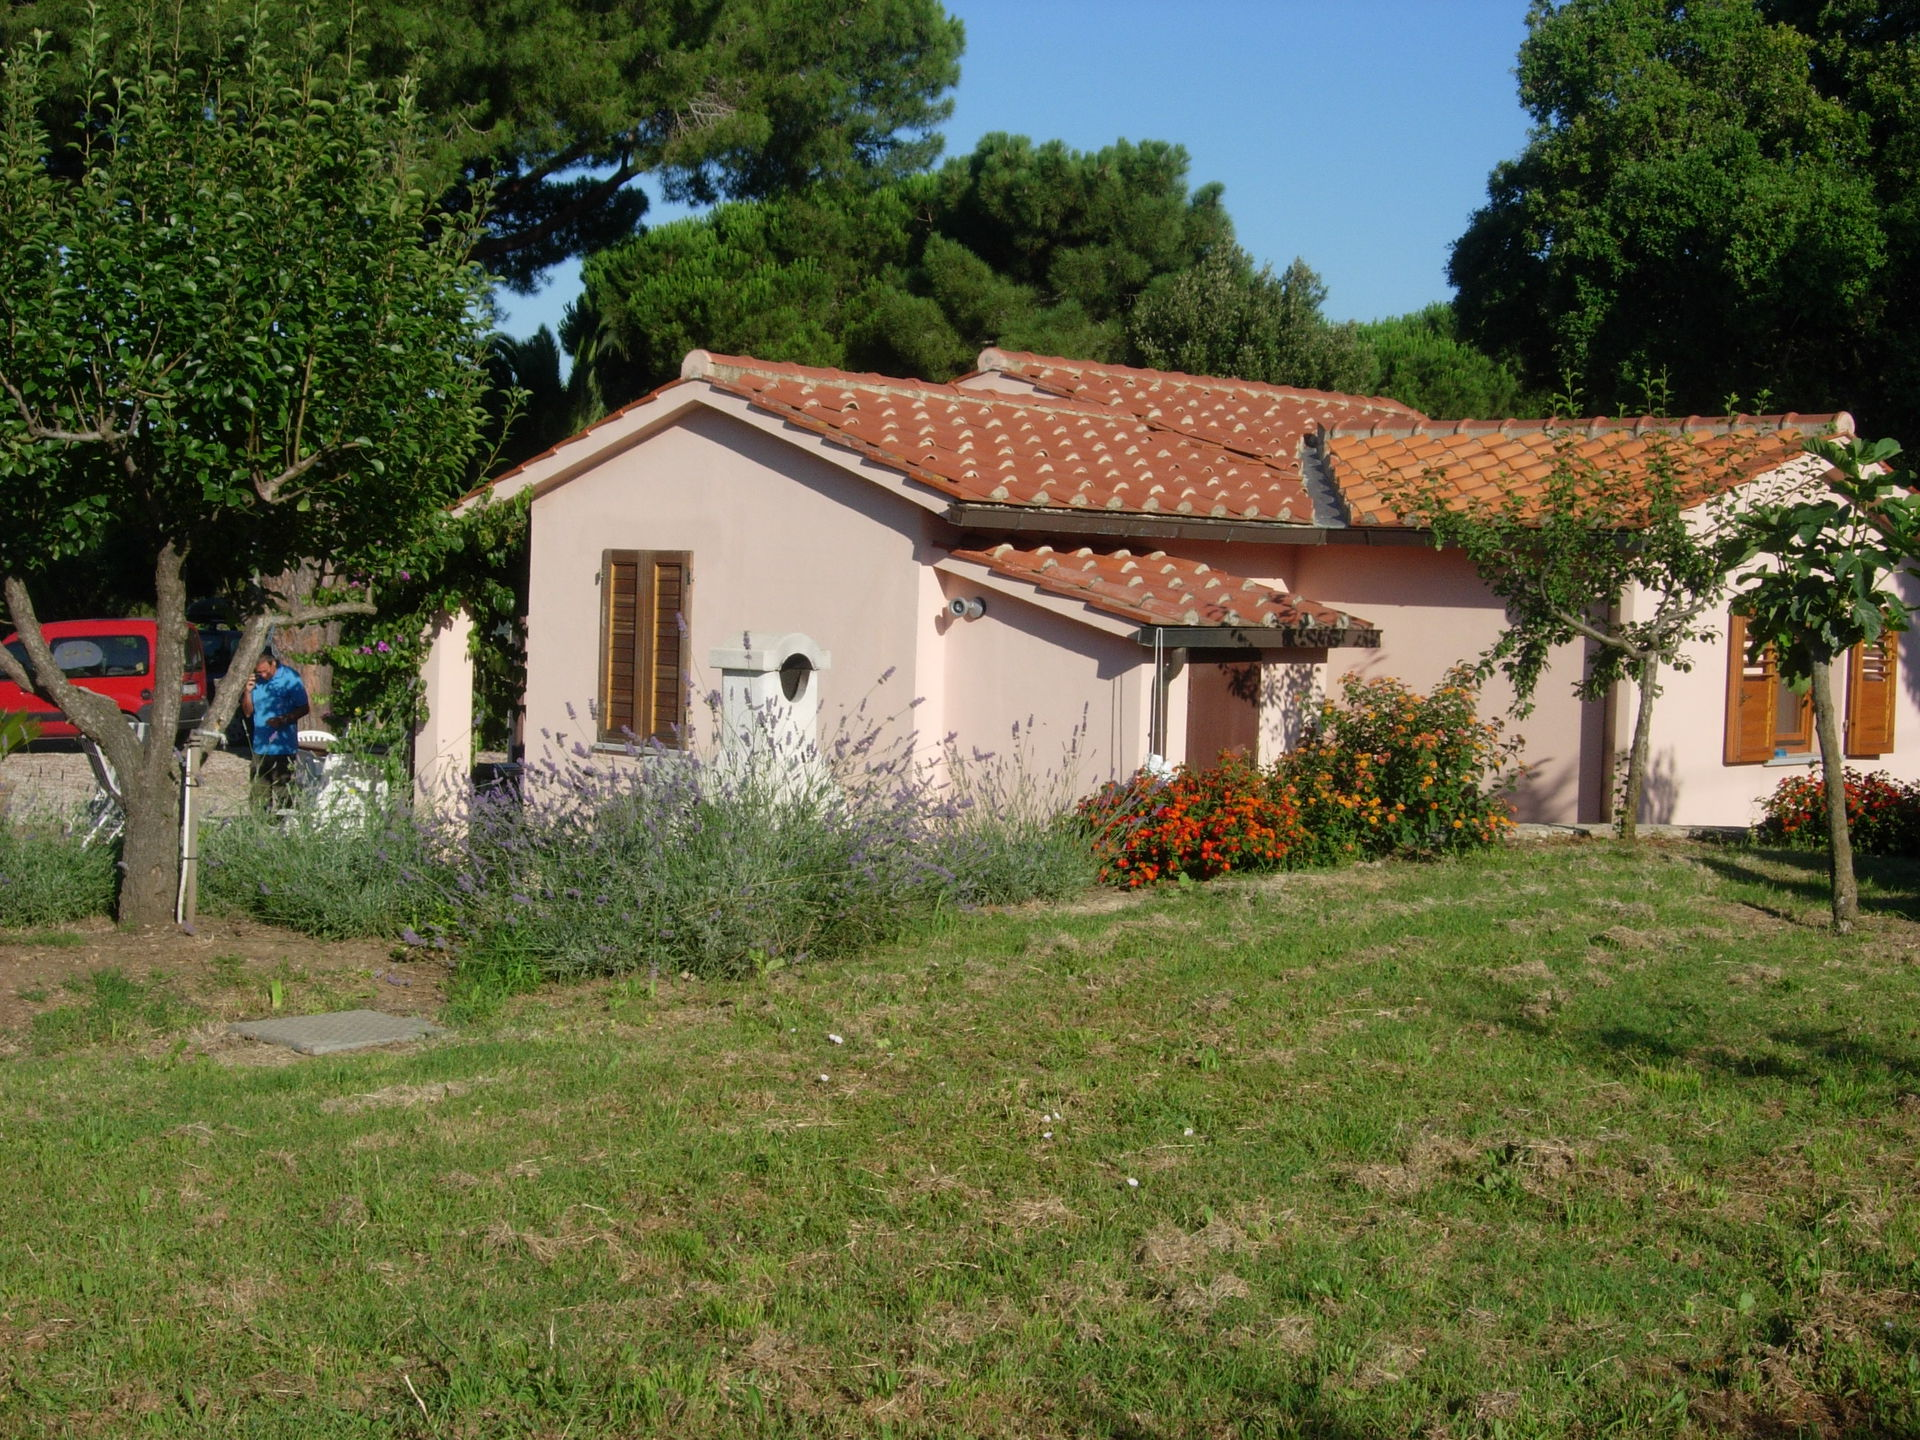 Our house in Capoliveri